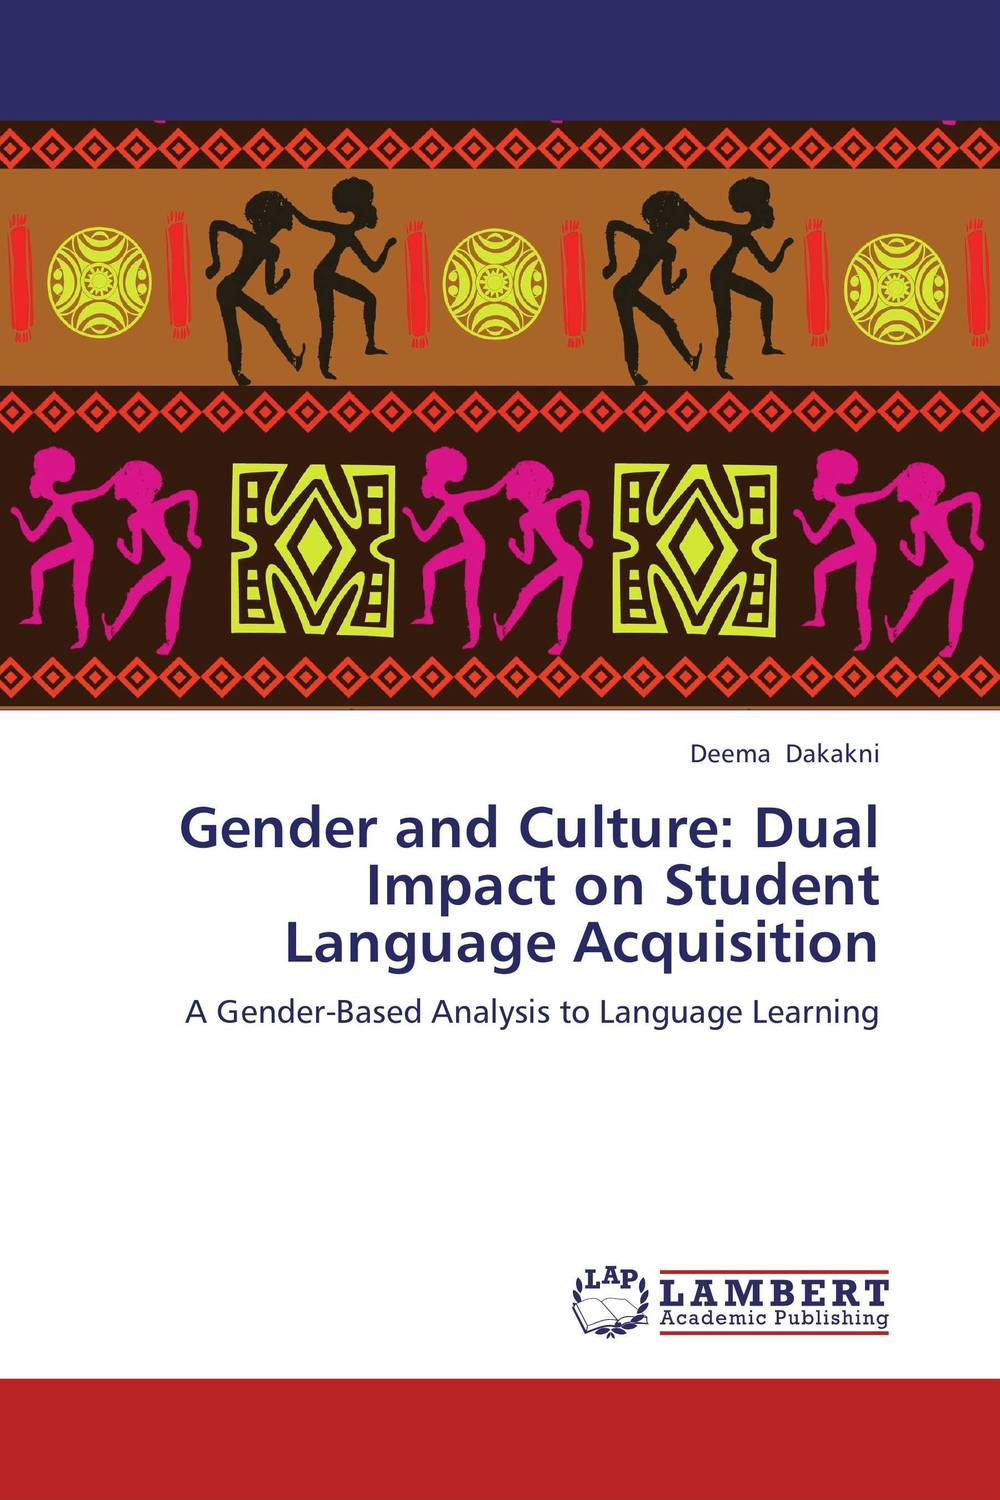 купить Gender and Culture: Dual Impact on Student Language Acquisition недорого